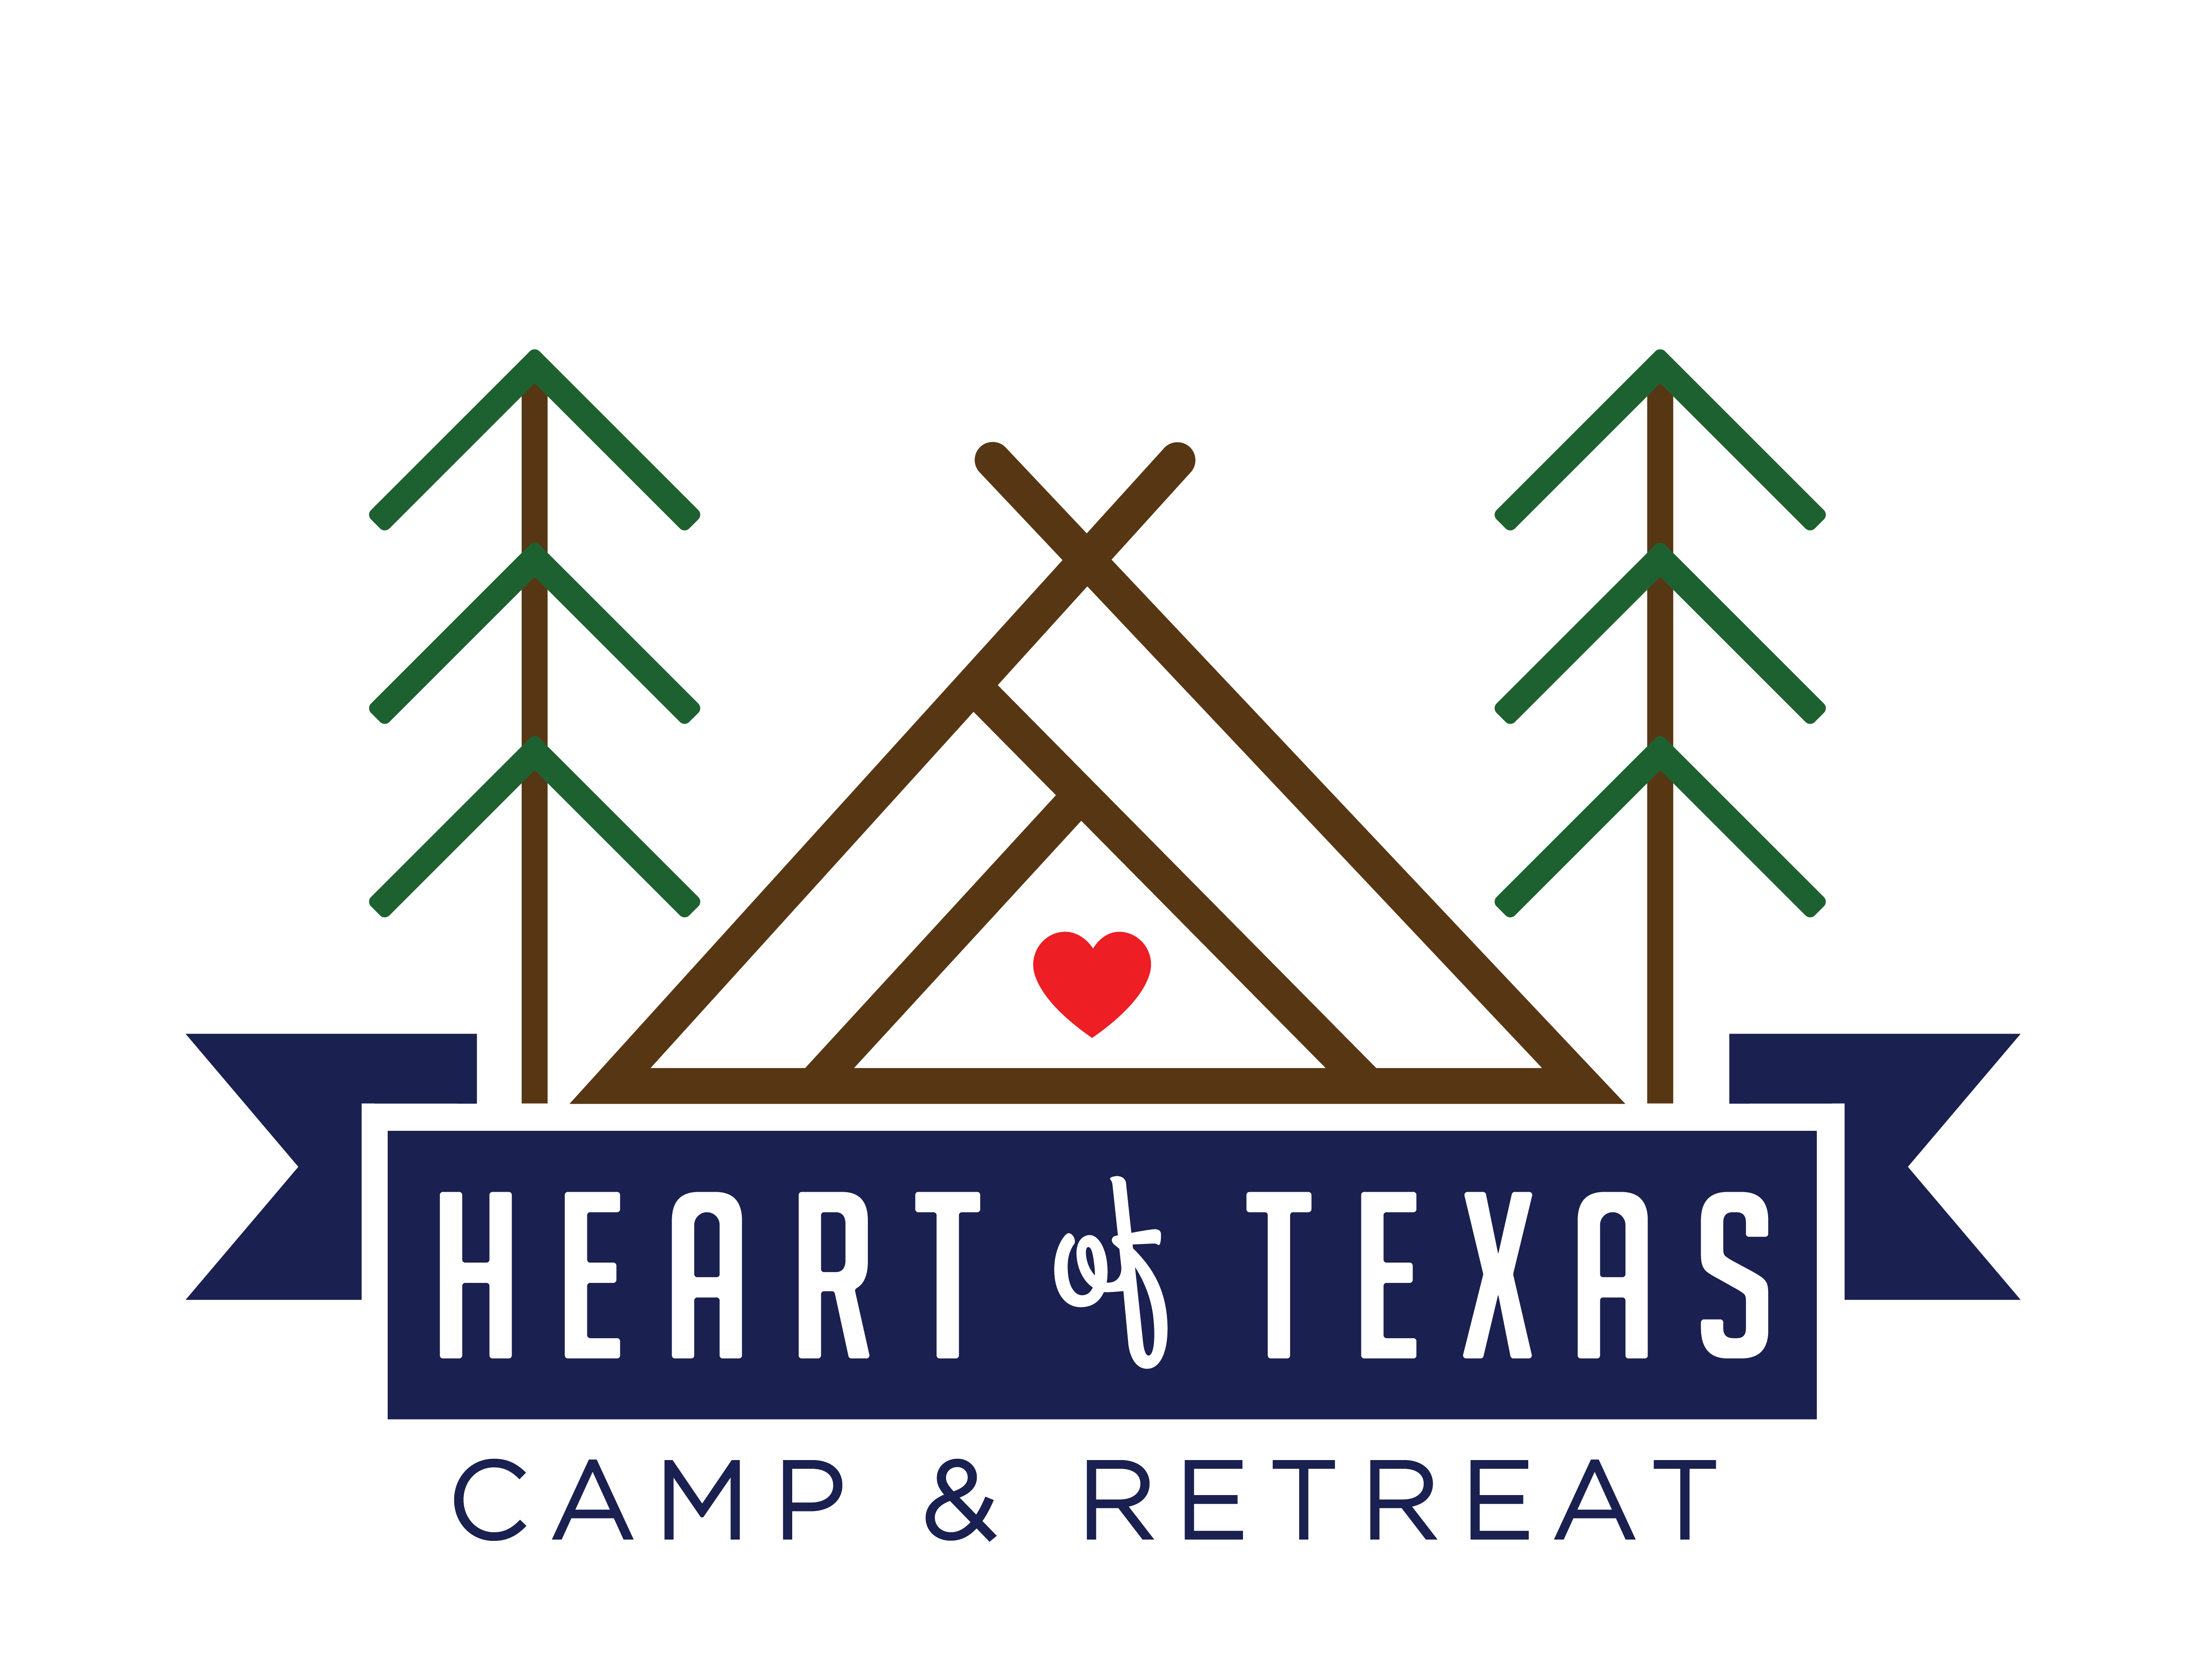 Heart of Texas Baptist Camp